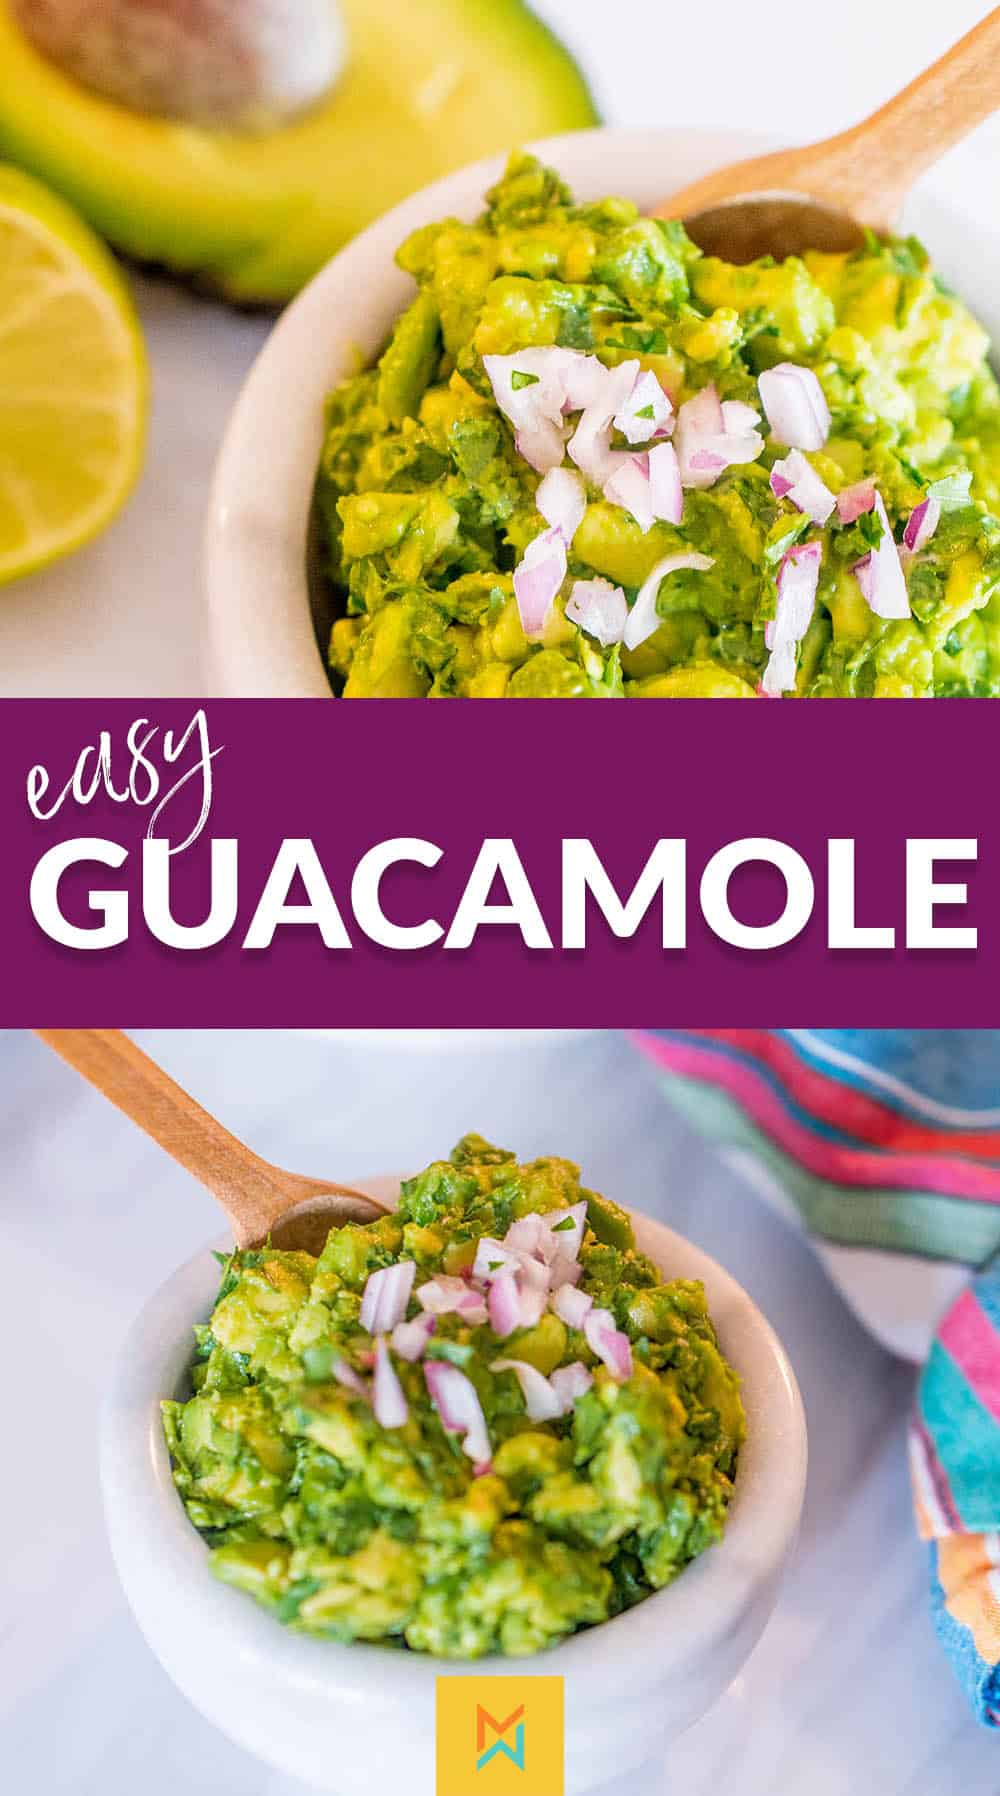 This Easy Guacamole Recipe is simple and delicious. It can go on anything from Fajitas to salads!